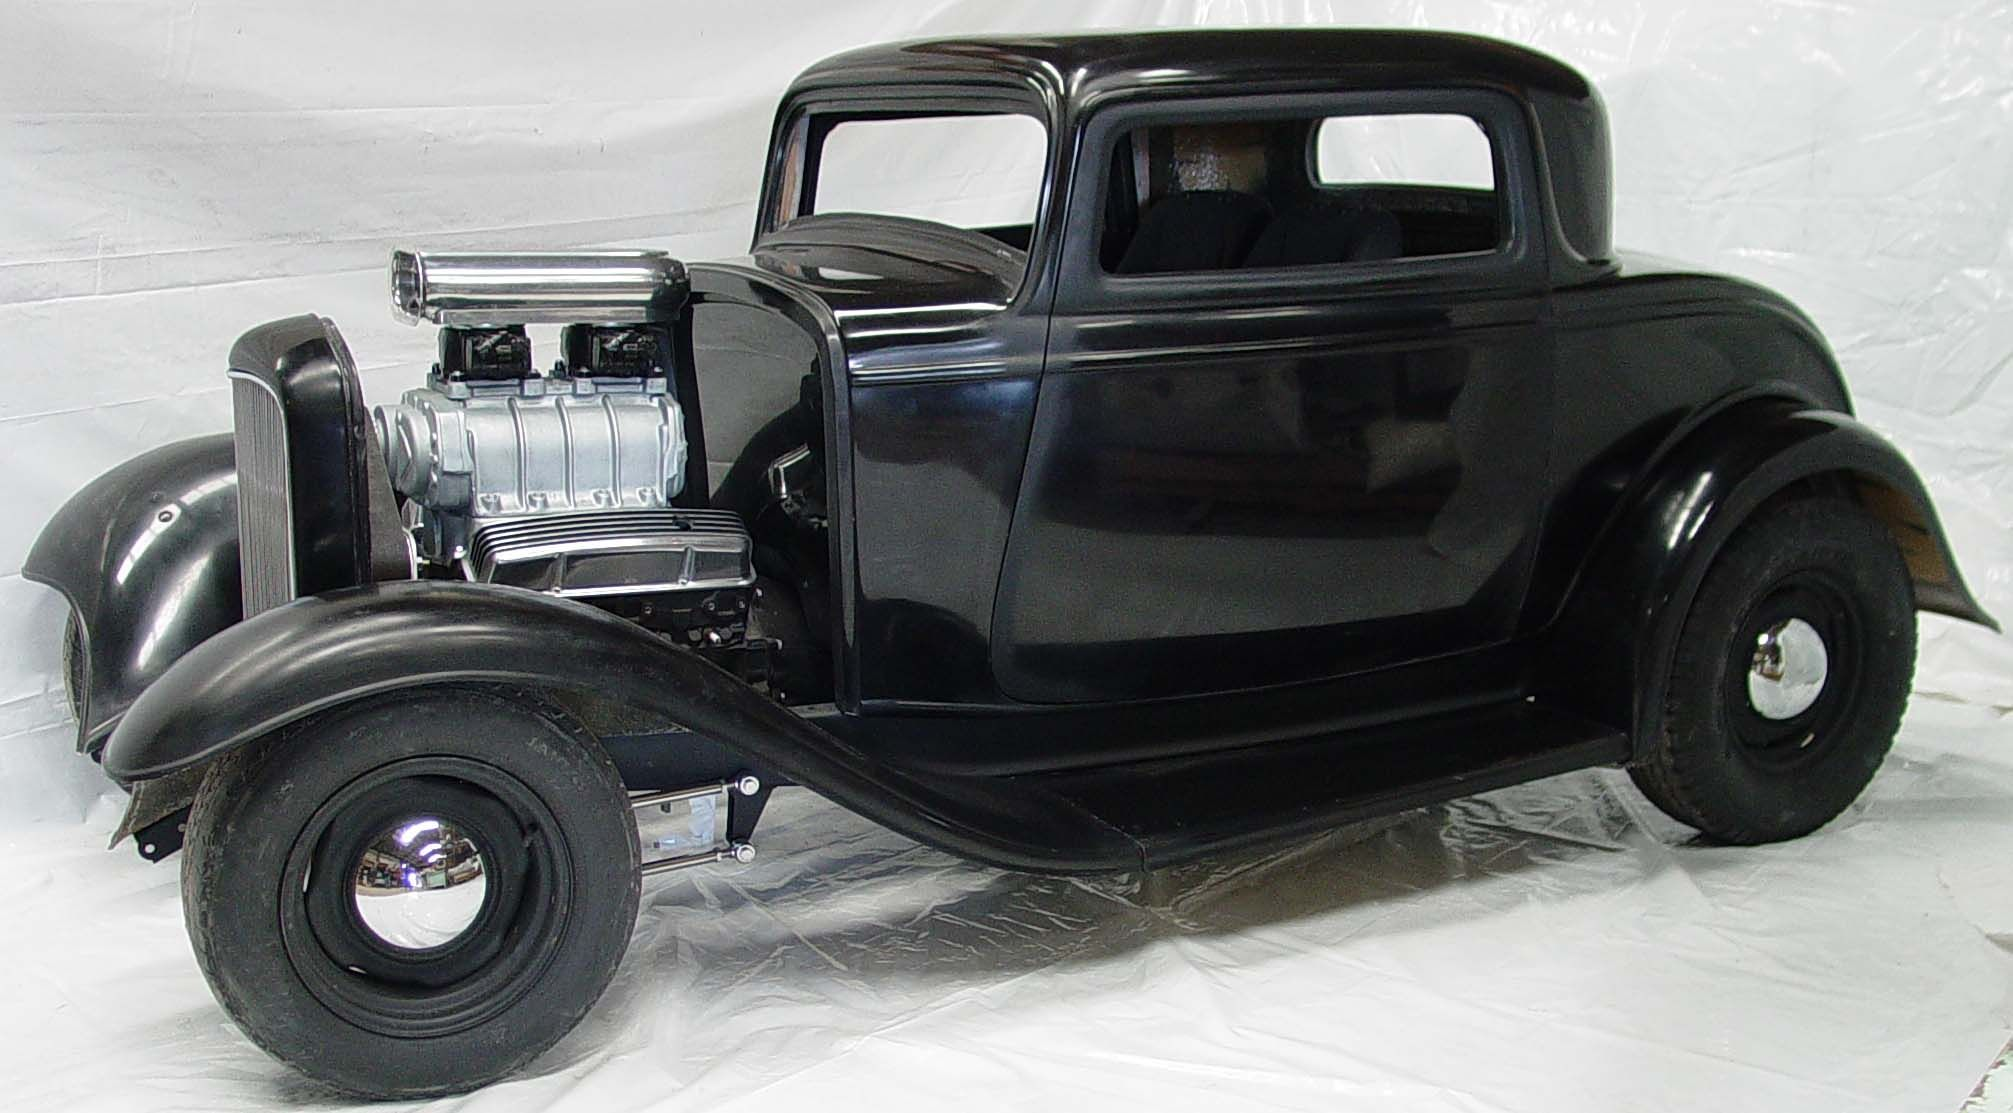 Ac Autos 32 Ford Coupe Body Tci Frames 32 Ford 32 Ford Coupe Ford